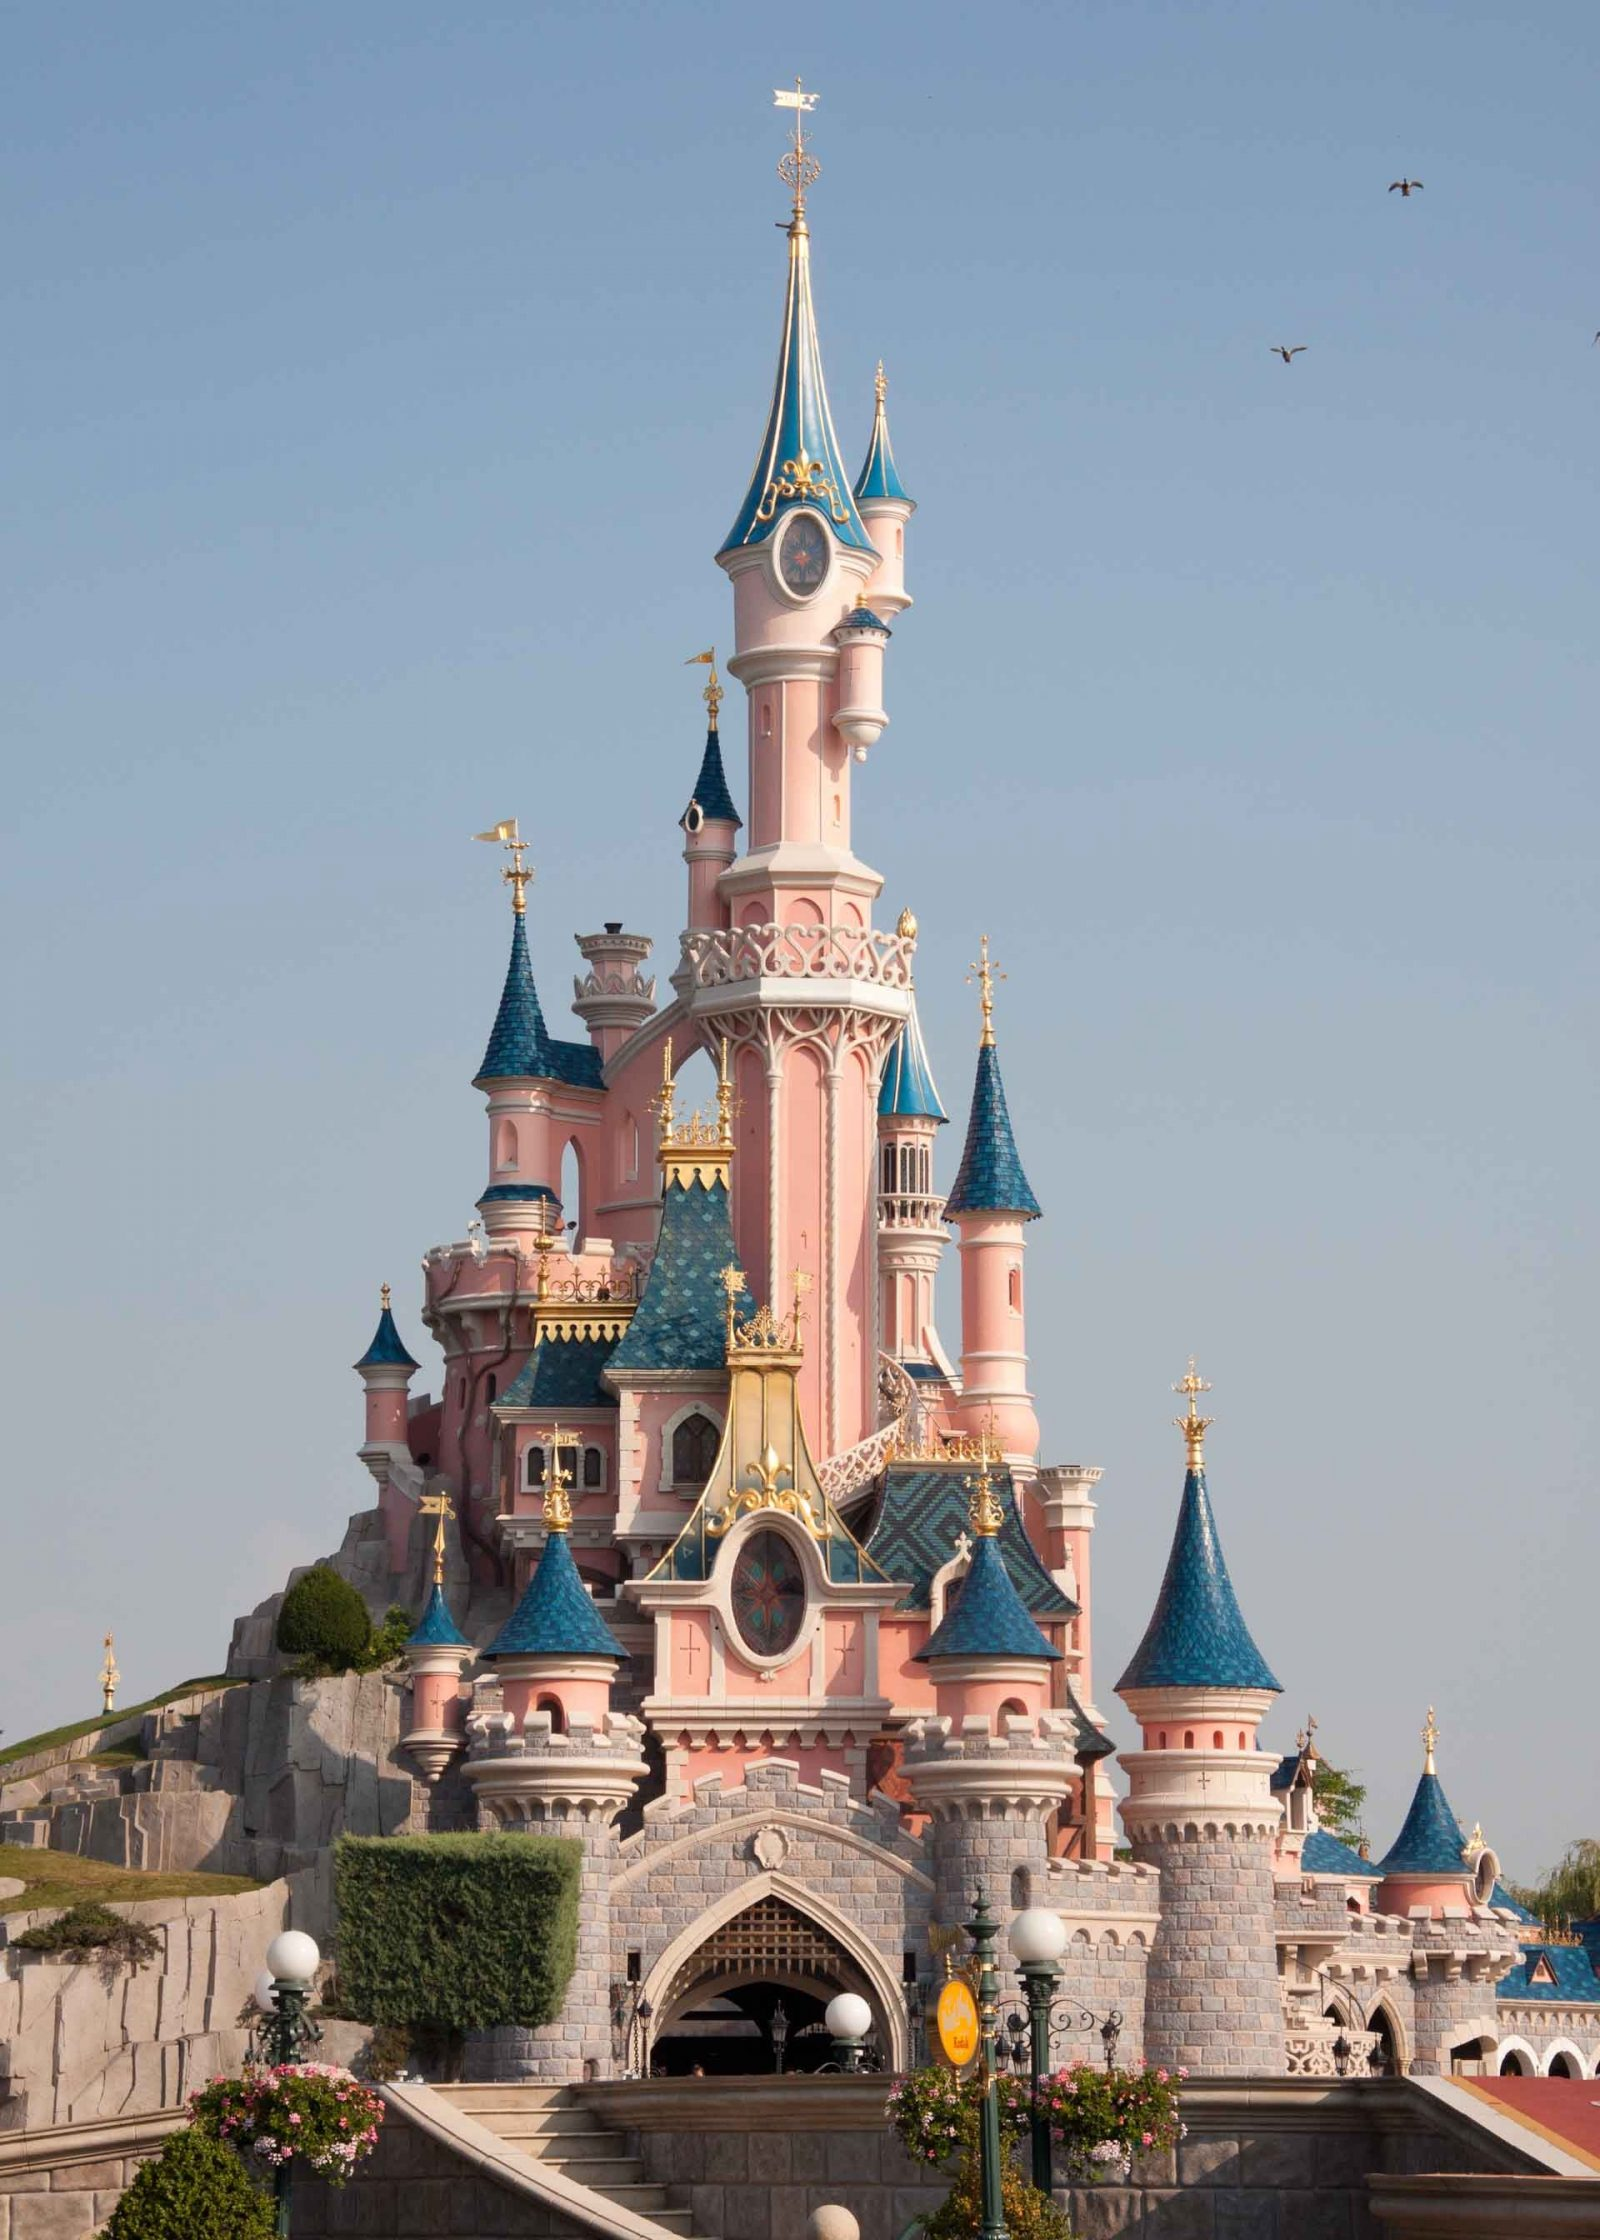 Comparing Three French Theme Parks - a review on Falcondale Life blog. Disneyland Paris, Parc Asterix and Puy du Fou comparison. What rides or attractions are there and how to plan a visit. Sleeping Beauty's Castle.